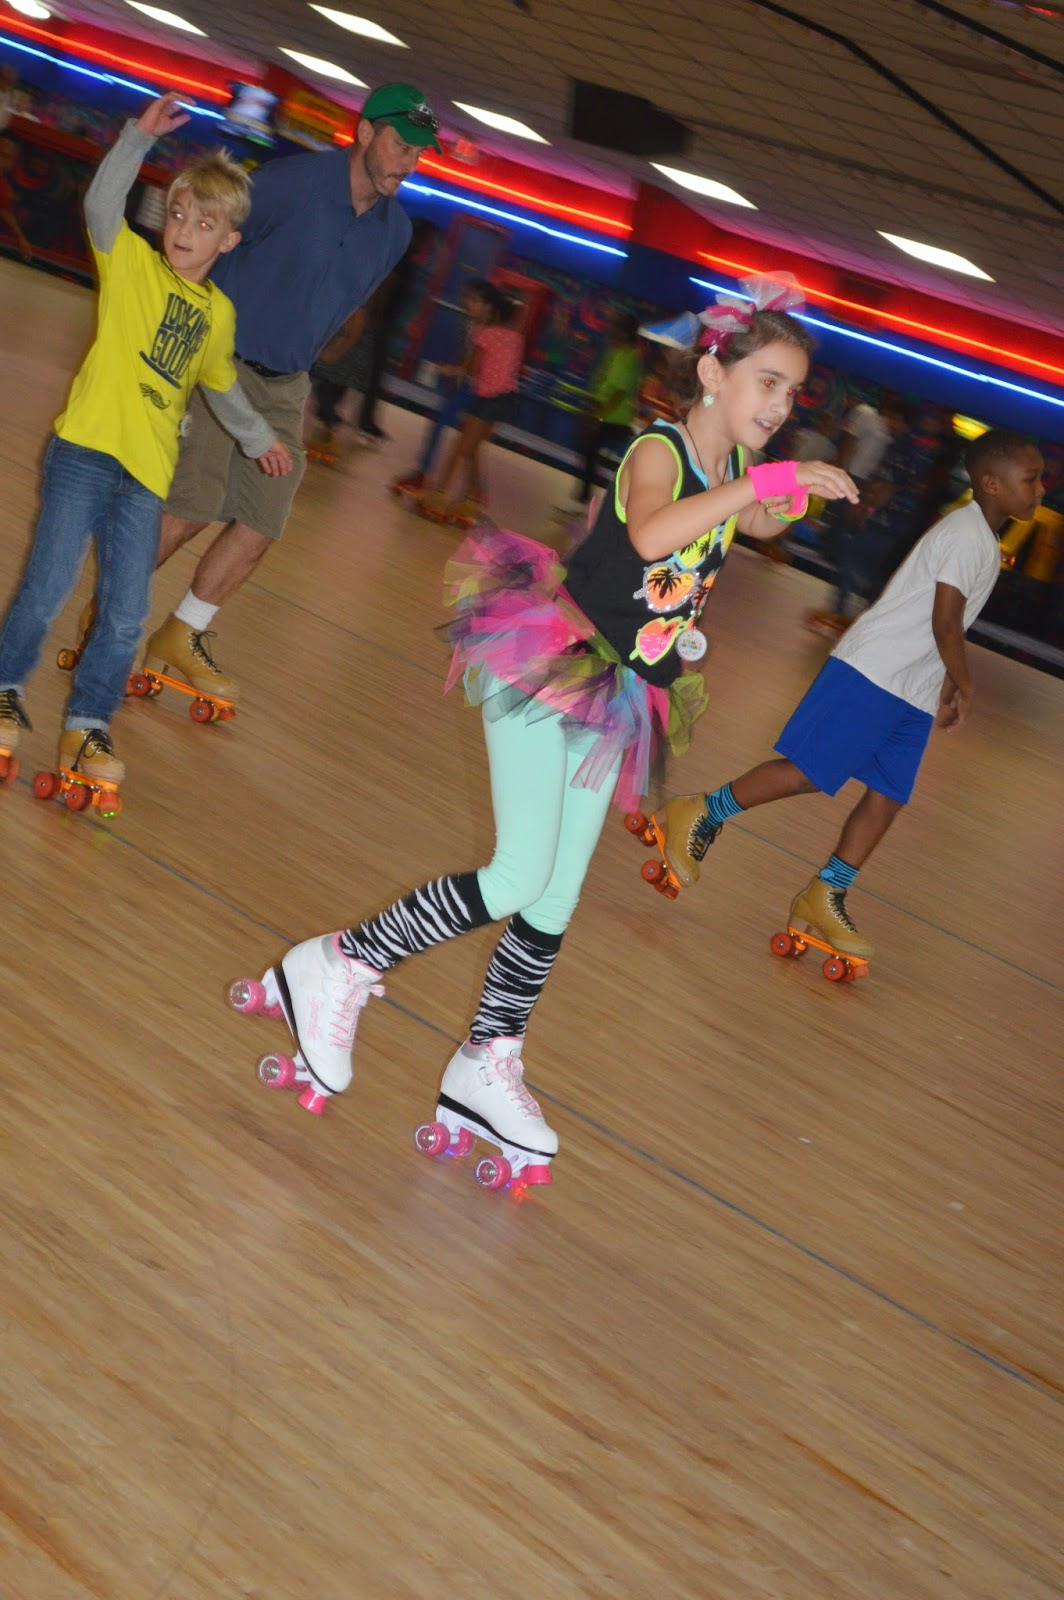 The Dixon Daily Kellyn S Roller Skating Birthday Party